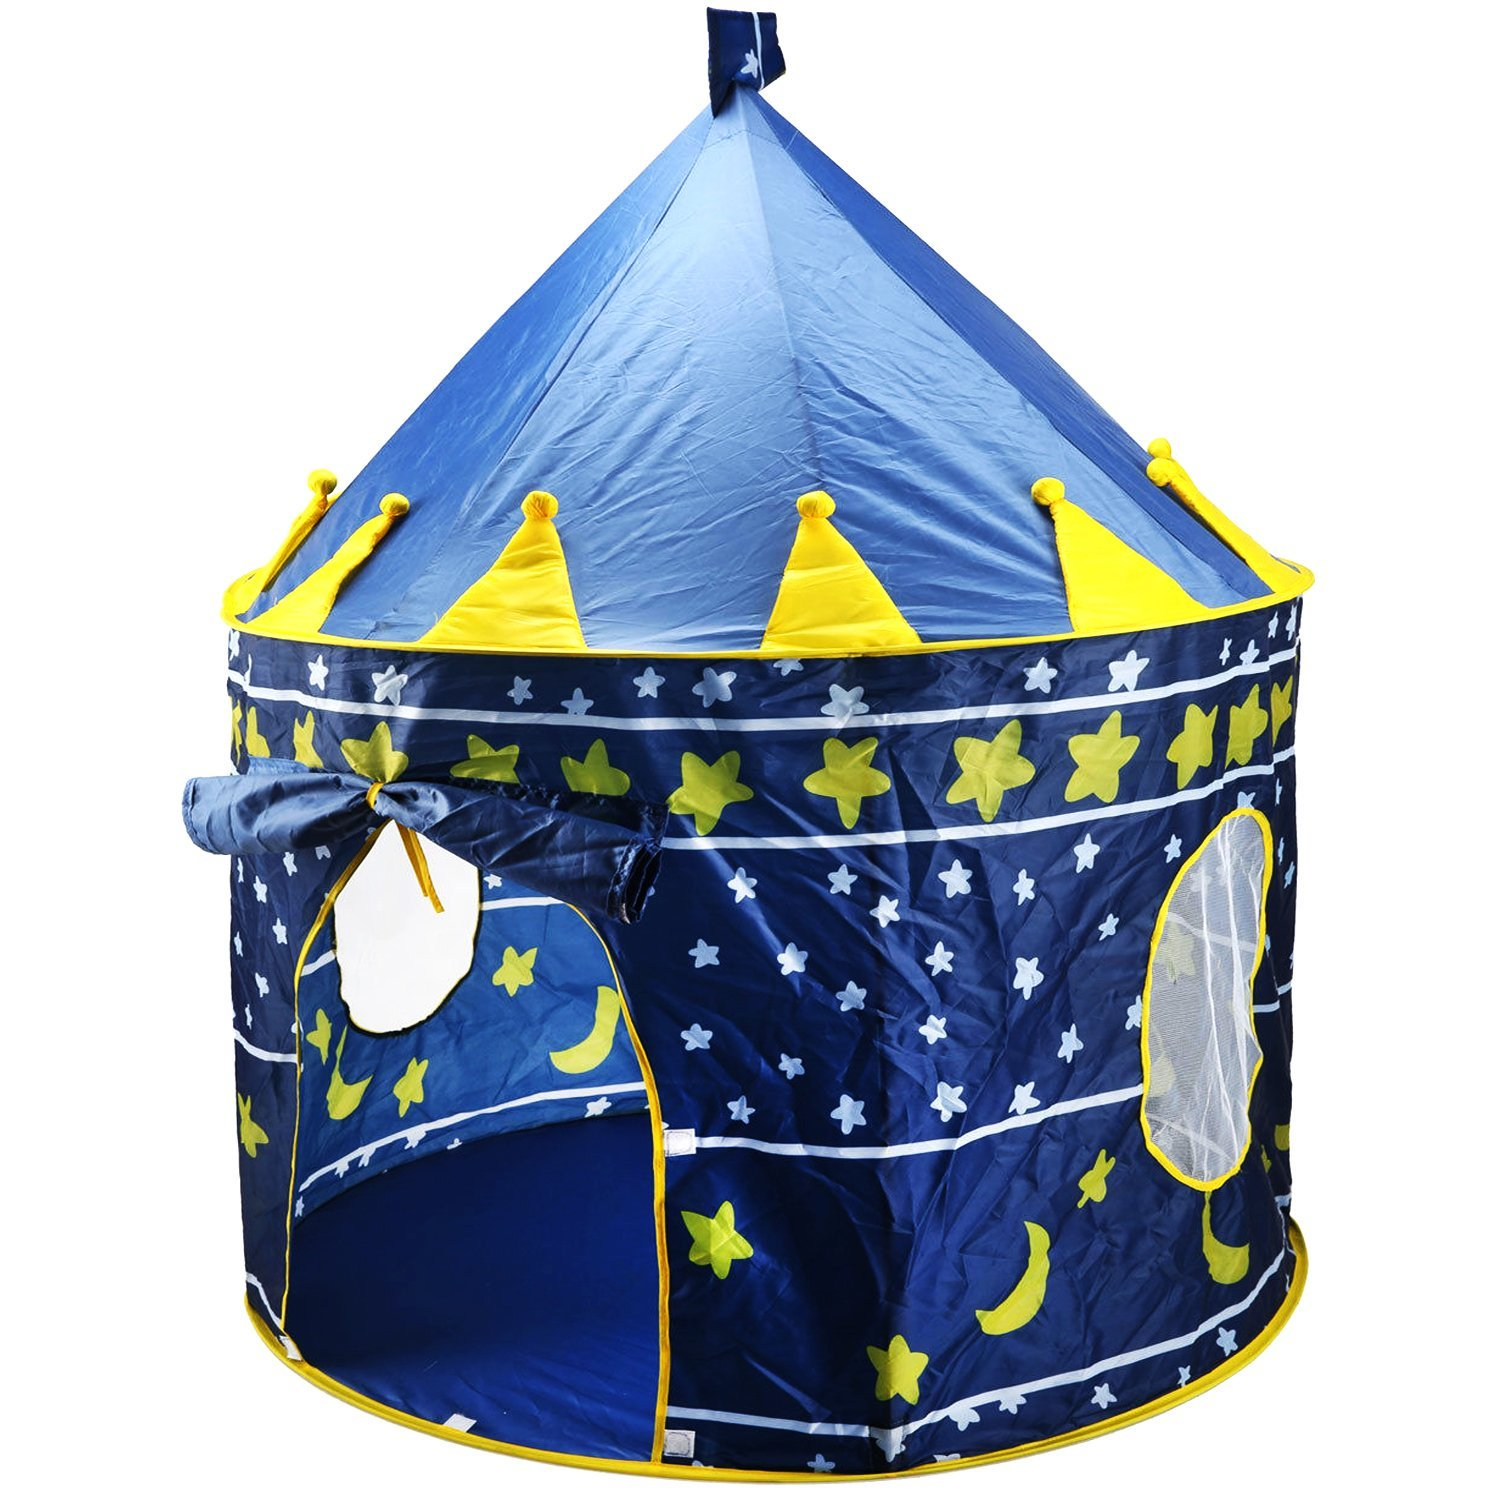 Children Play Tent Boys Girls Prince House Indoor Outdoor Blue Foldable Tent with Case by Creatov  sc 1 st  Walmart : spongebob play tent - memphite.com